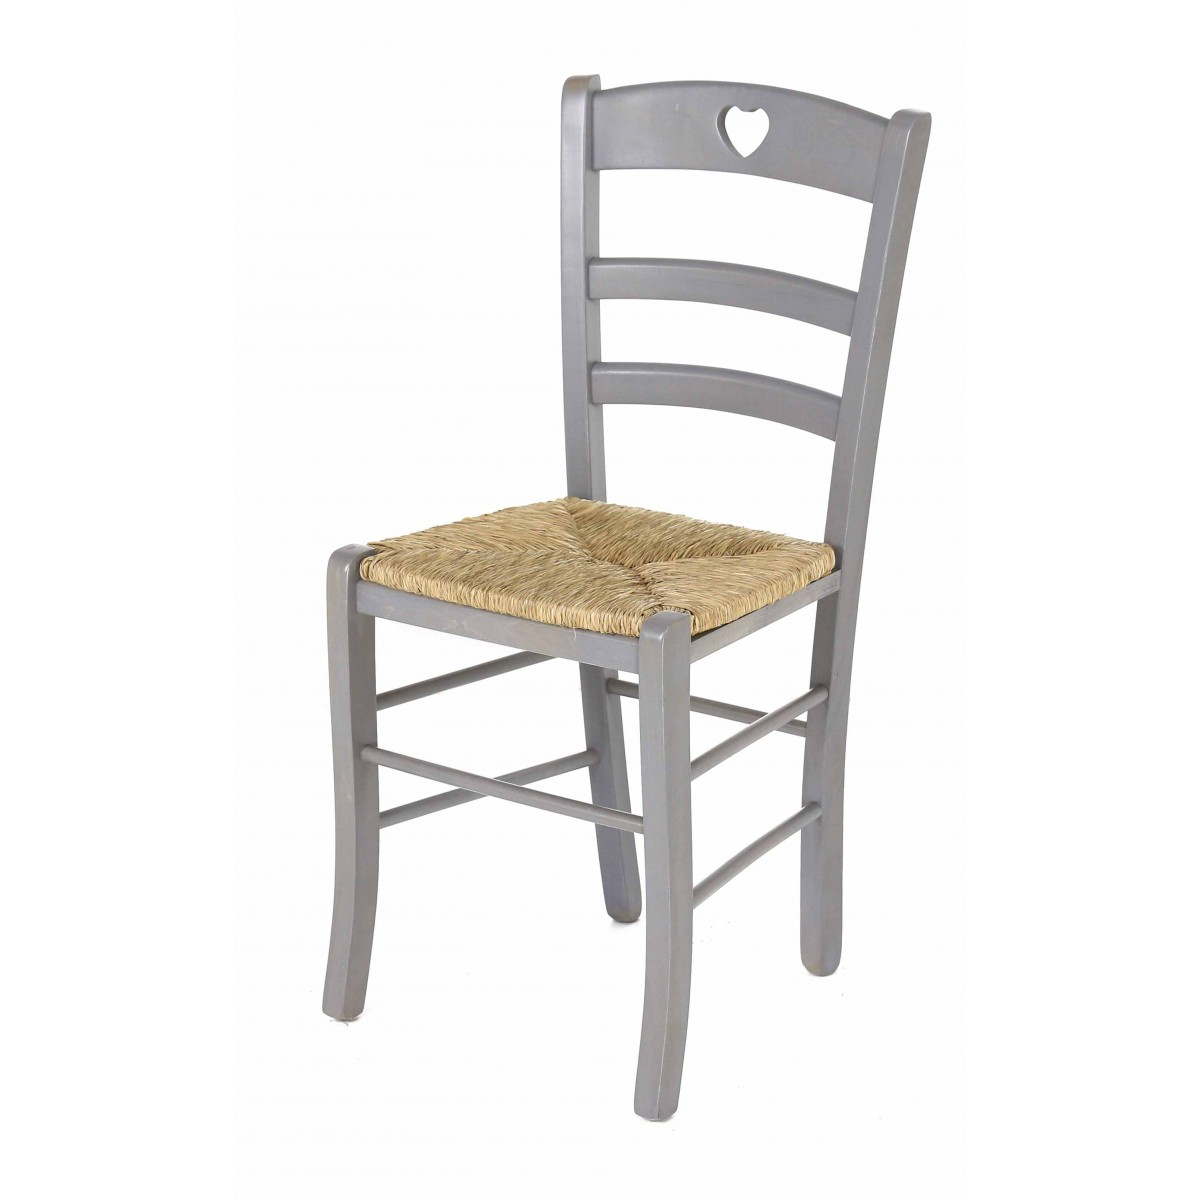 Chaises Grise Gallery Chaise Grise Salle A Manger Fauteuil